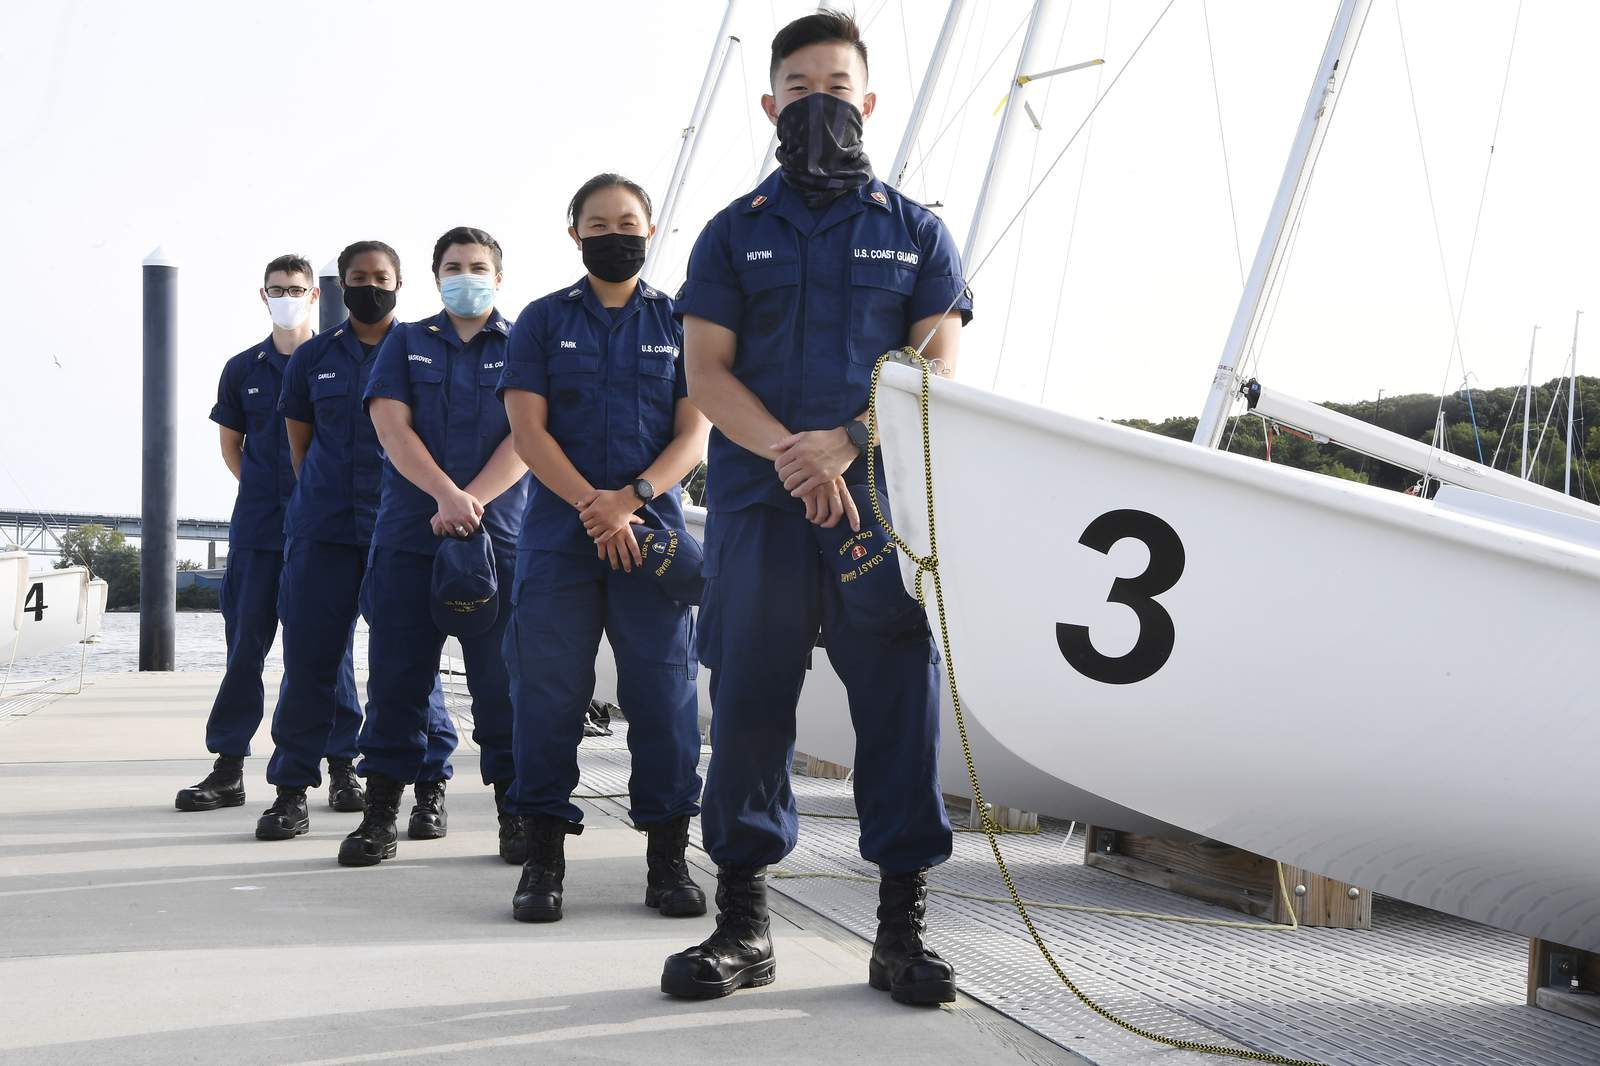 Pandemic spells opportunity for marooned Coast Guard cadets